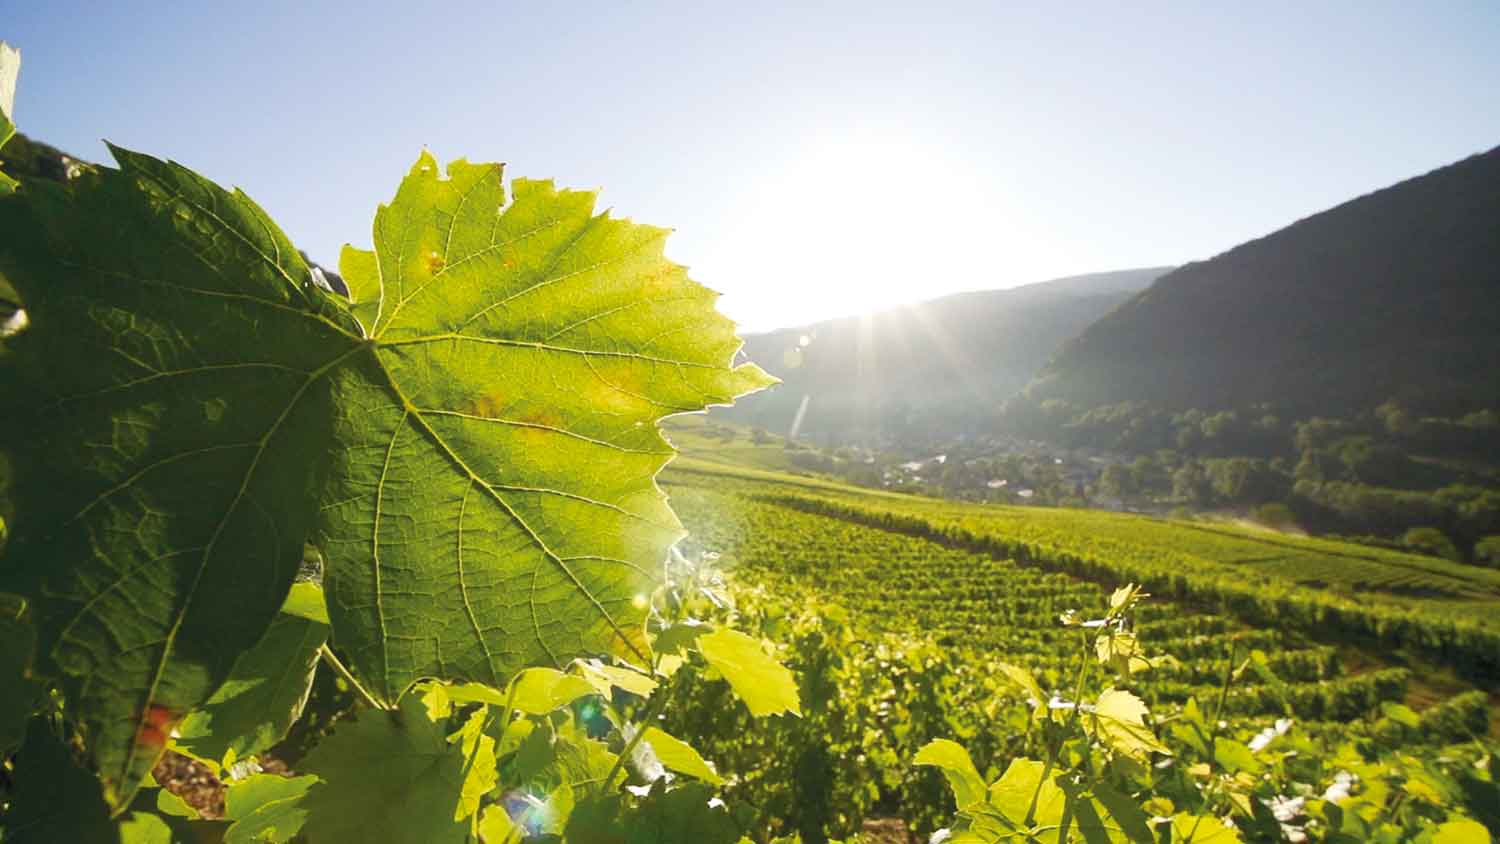 The vineyard of Bugey